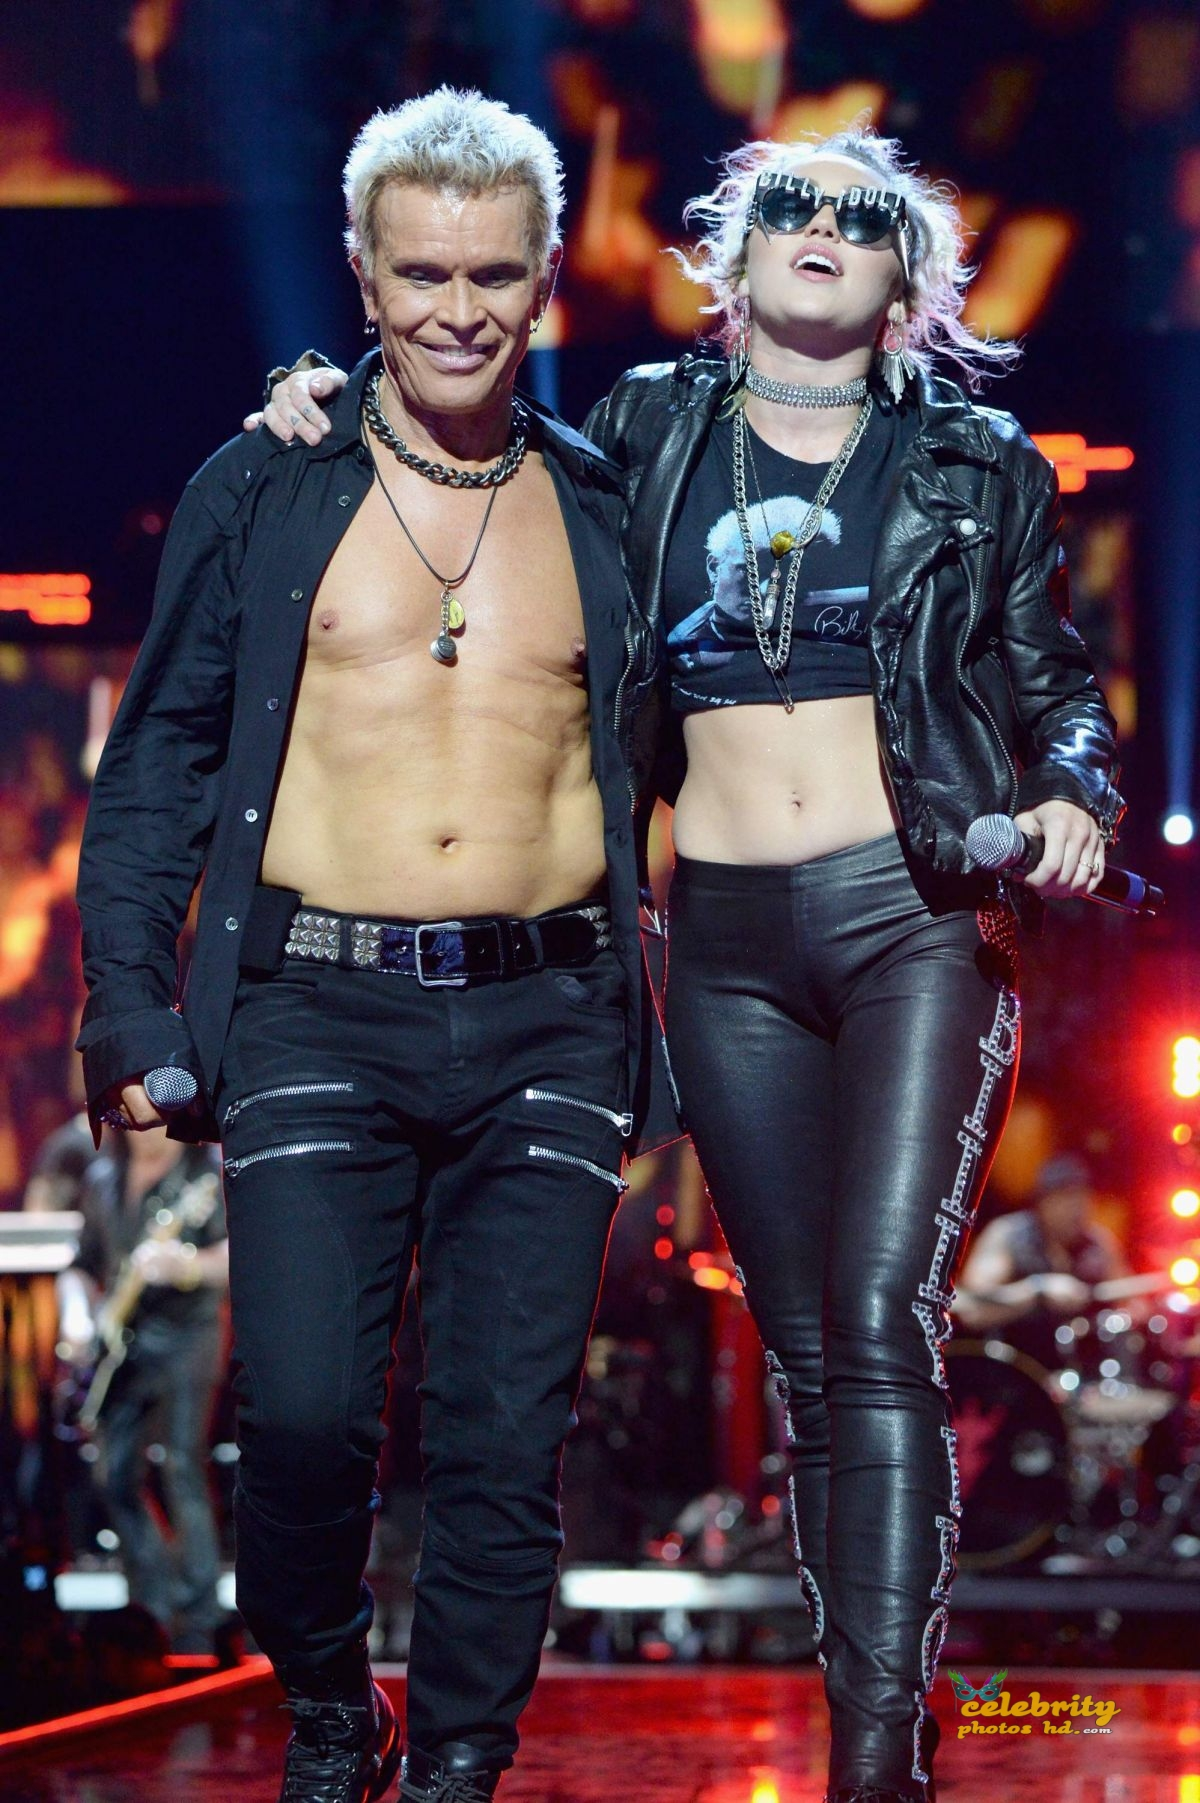 miley-cyrus-joins-billy-idol-onstage-during-the-iheartradio-festival-_1